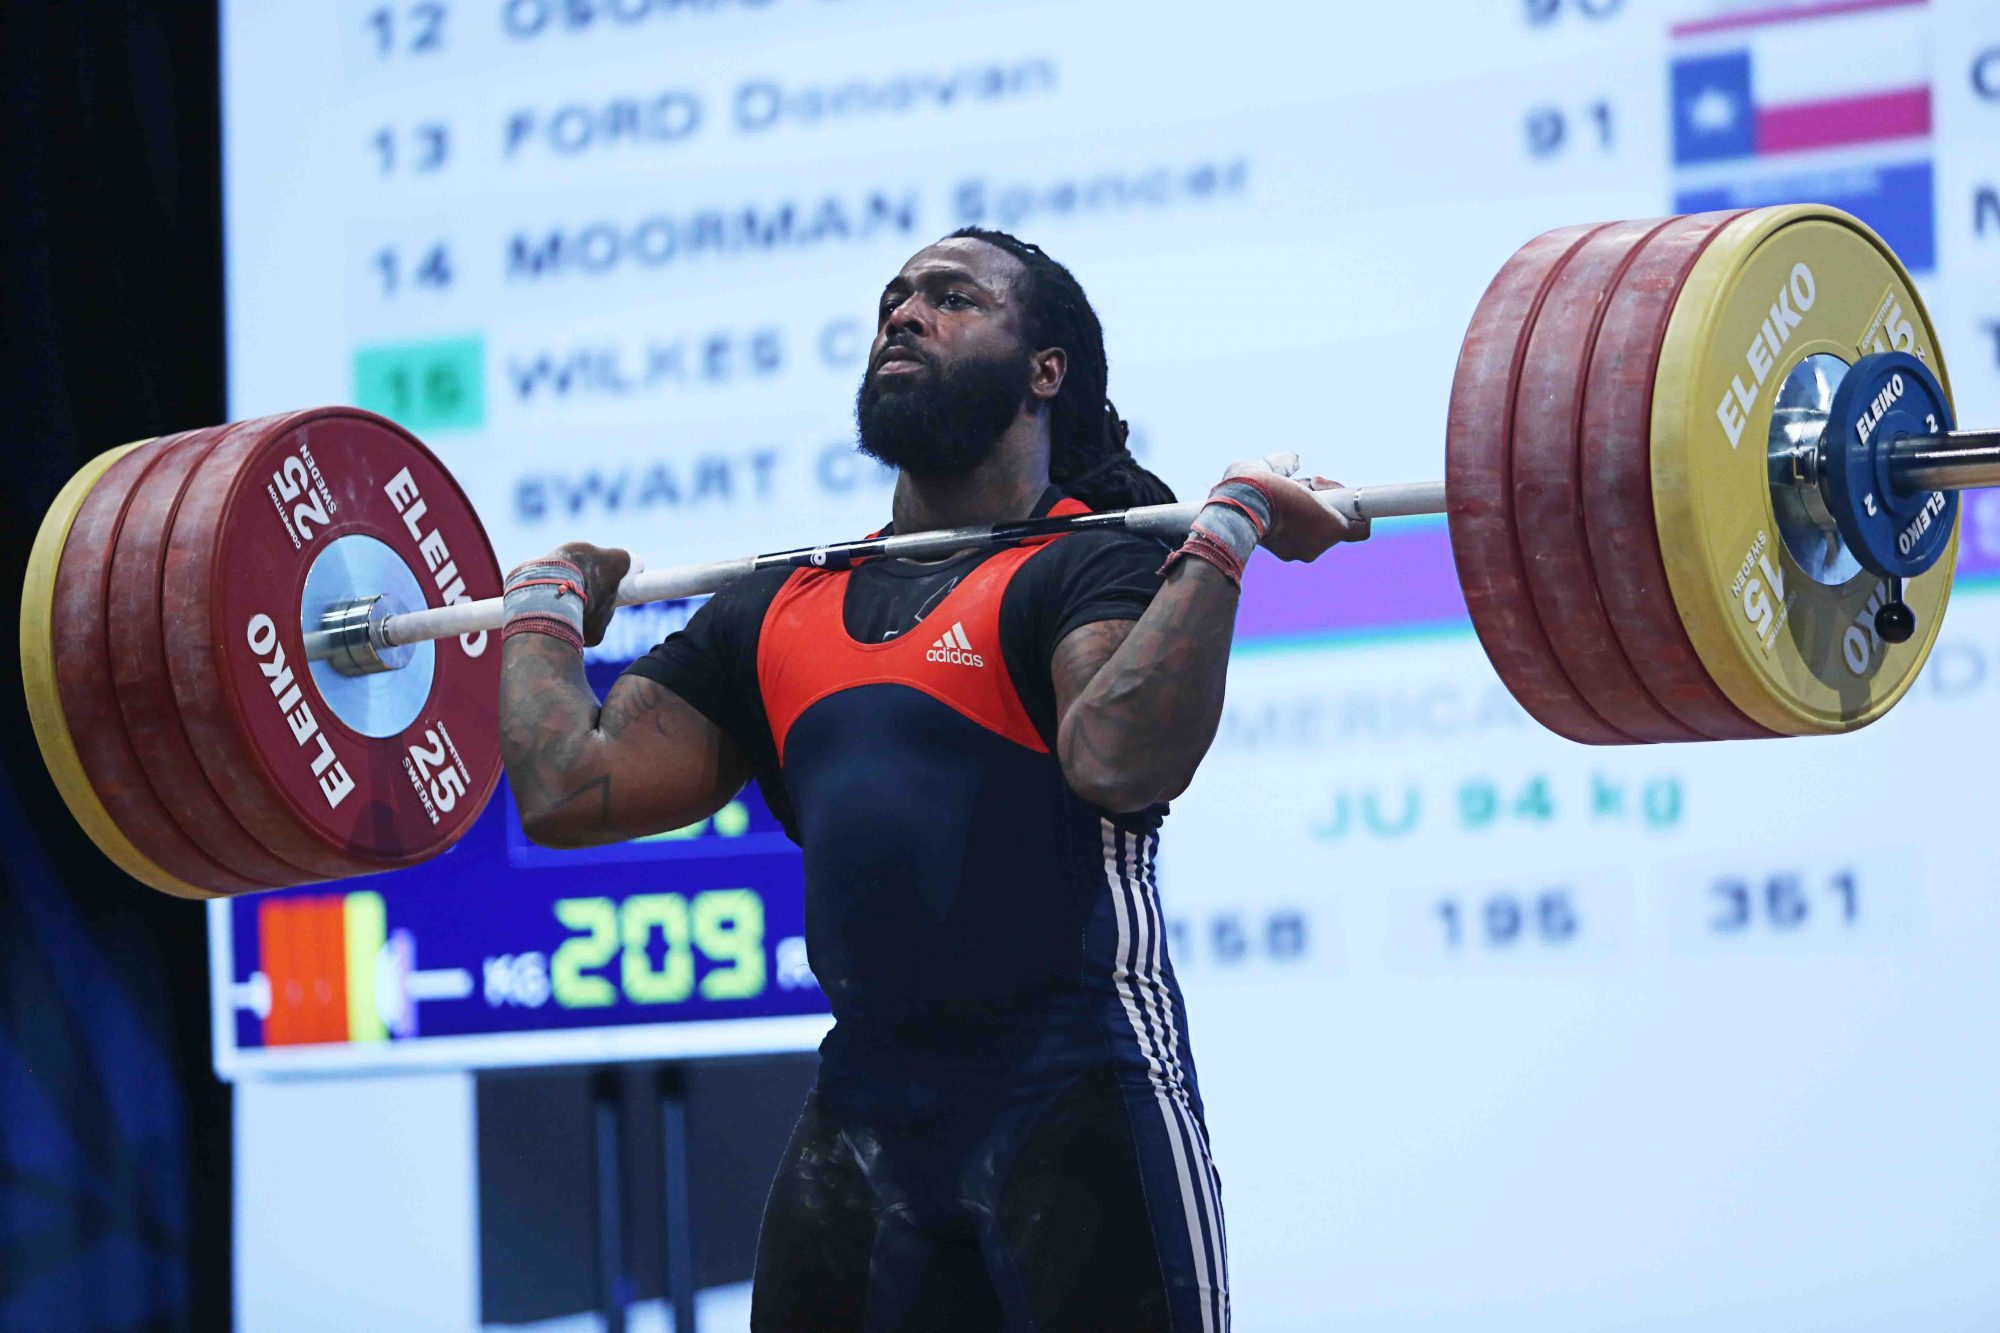 Kendrick Farris | Shreveport, Louisiana | Weightlifting